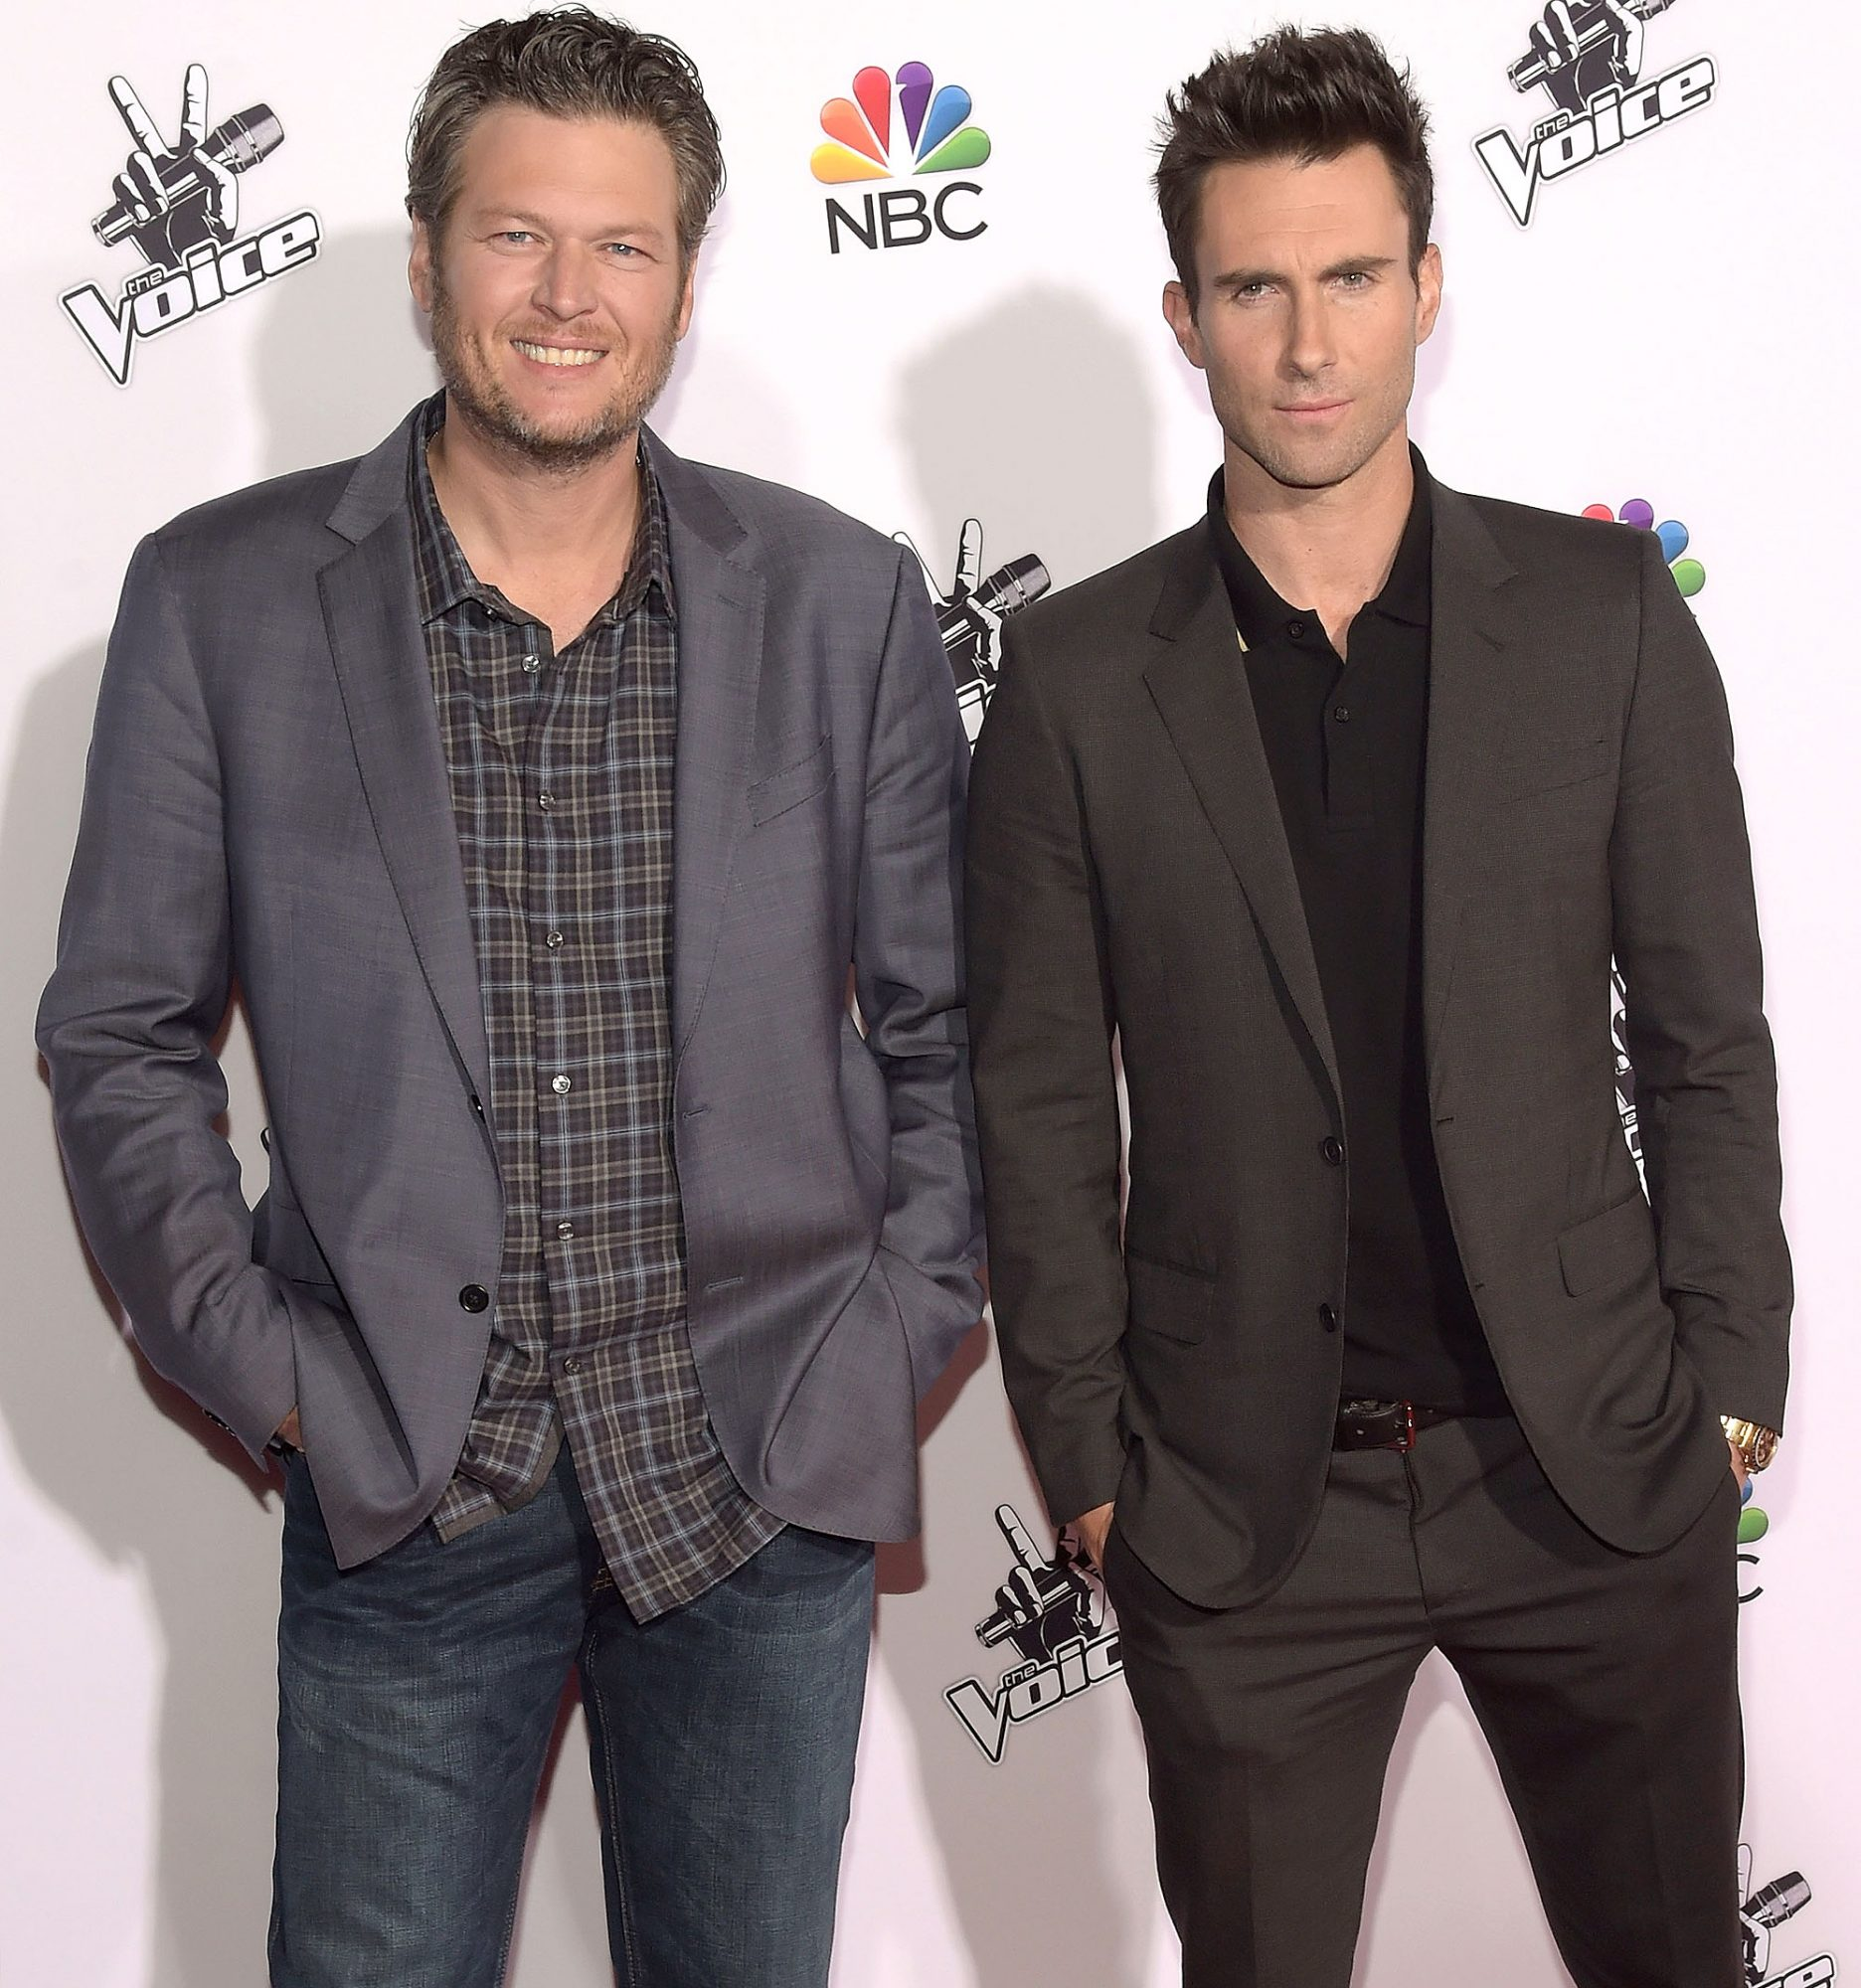 """After 12 seasons on The Voice together, Shelton and Levine have formed an unbreakable bond. """"I remember when I saw him at the meeting at NBC, I was instantly very taken by him 'cause he was definitely not your typical country artist,"""" Levine told PEOPLE. """"He was not a cookie-cutter guy, and the second we met, we were friends. All of the bulls--- that we do comes from a place of love."""""""